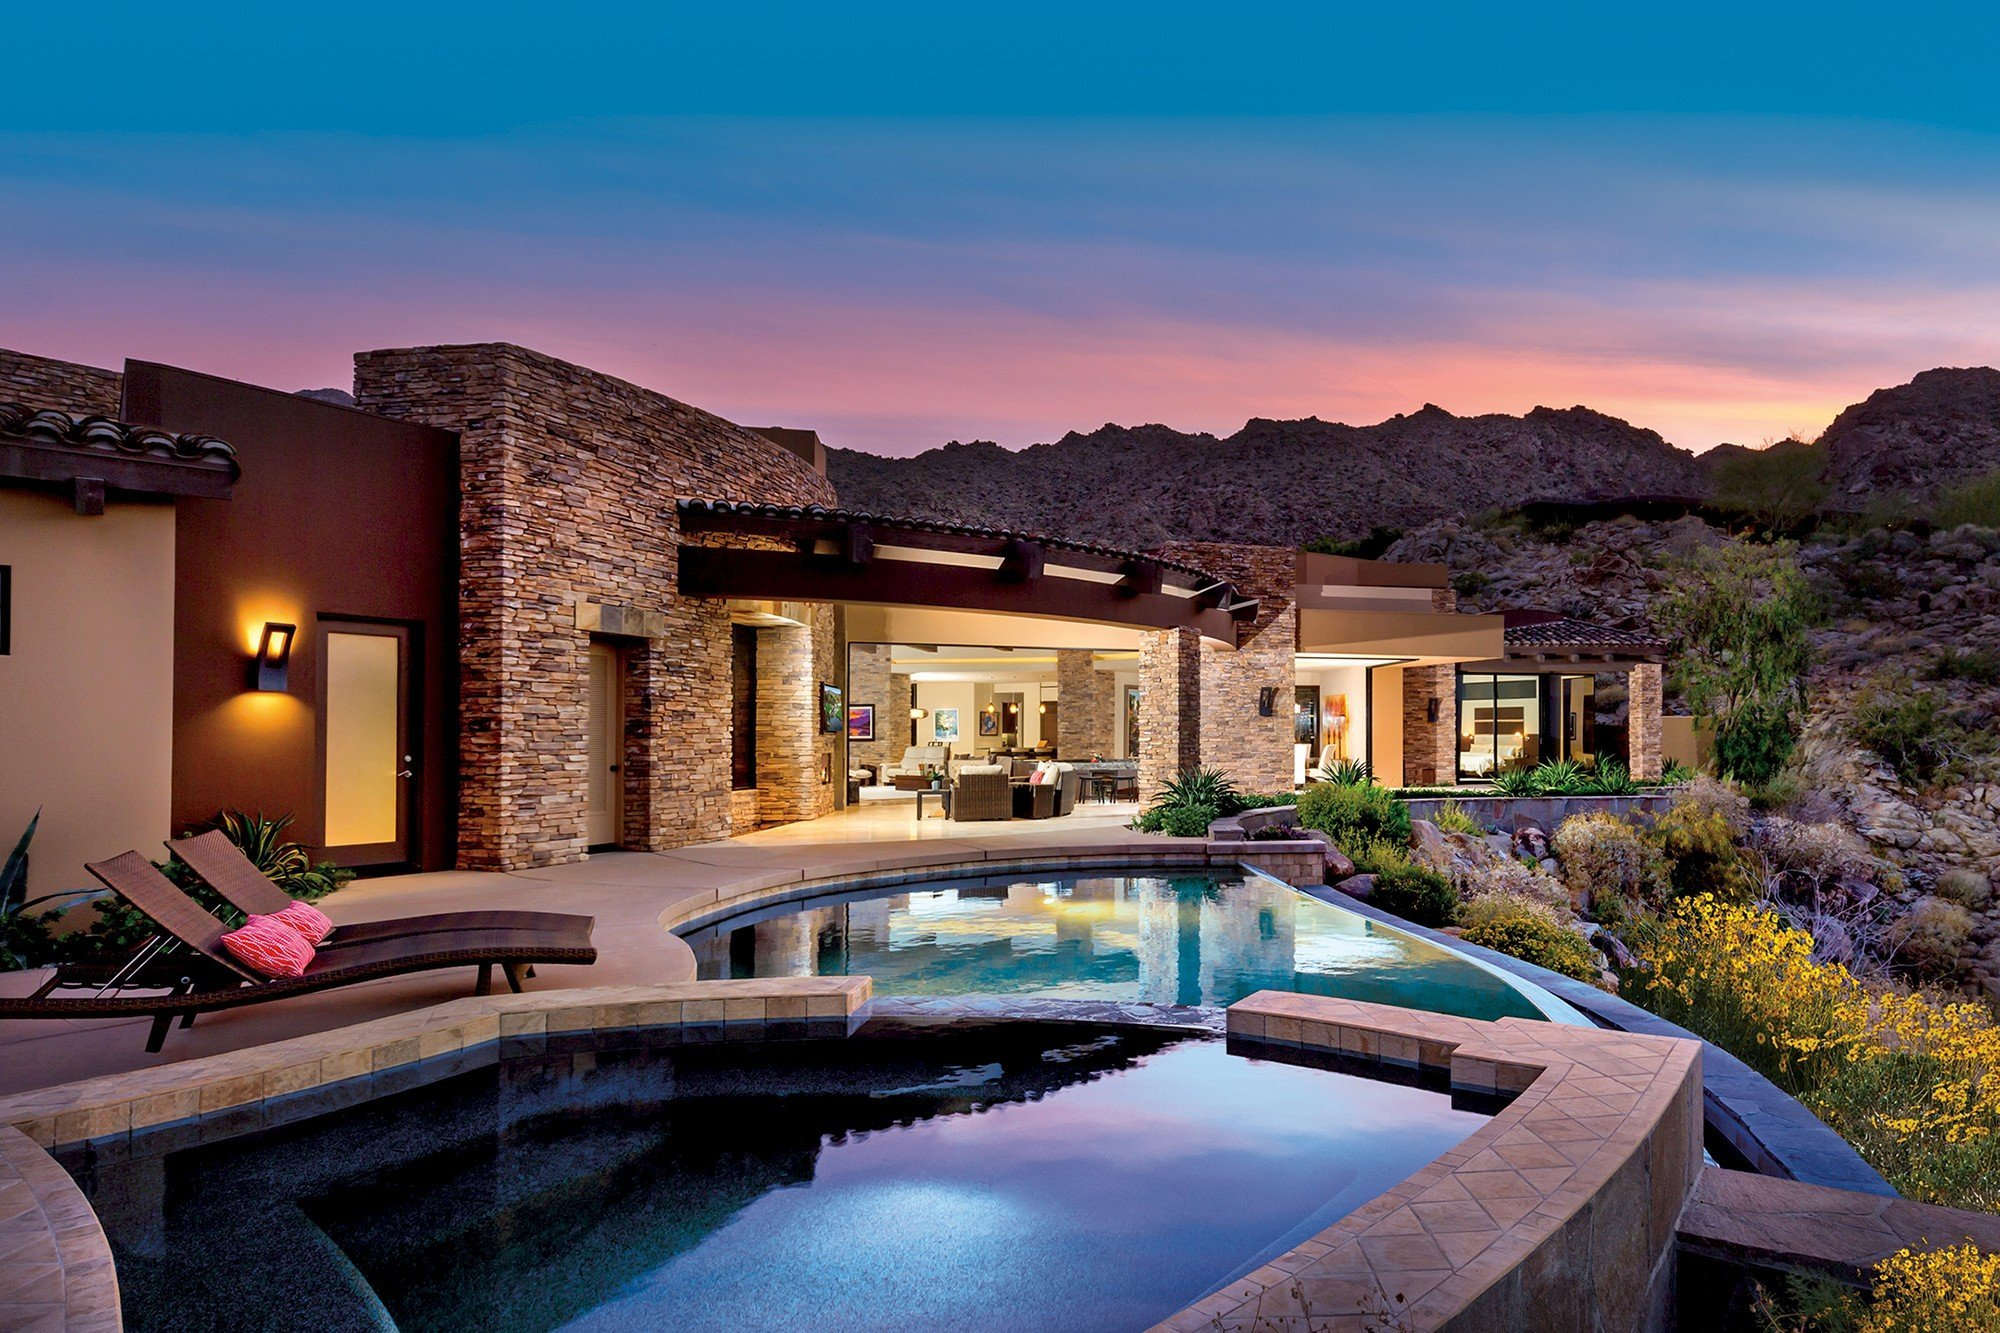 New Homes for Sale in Gilbert AZ